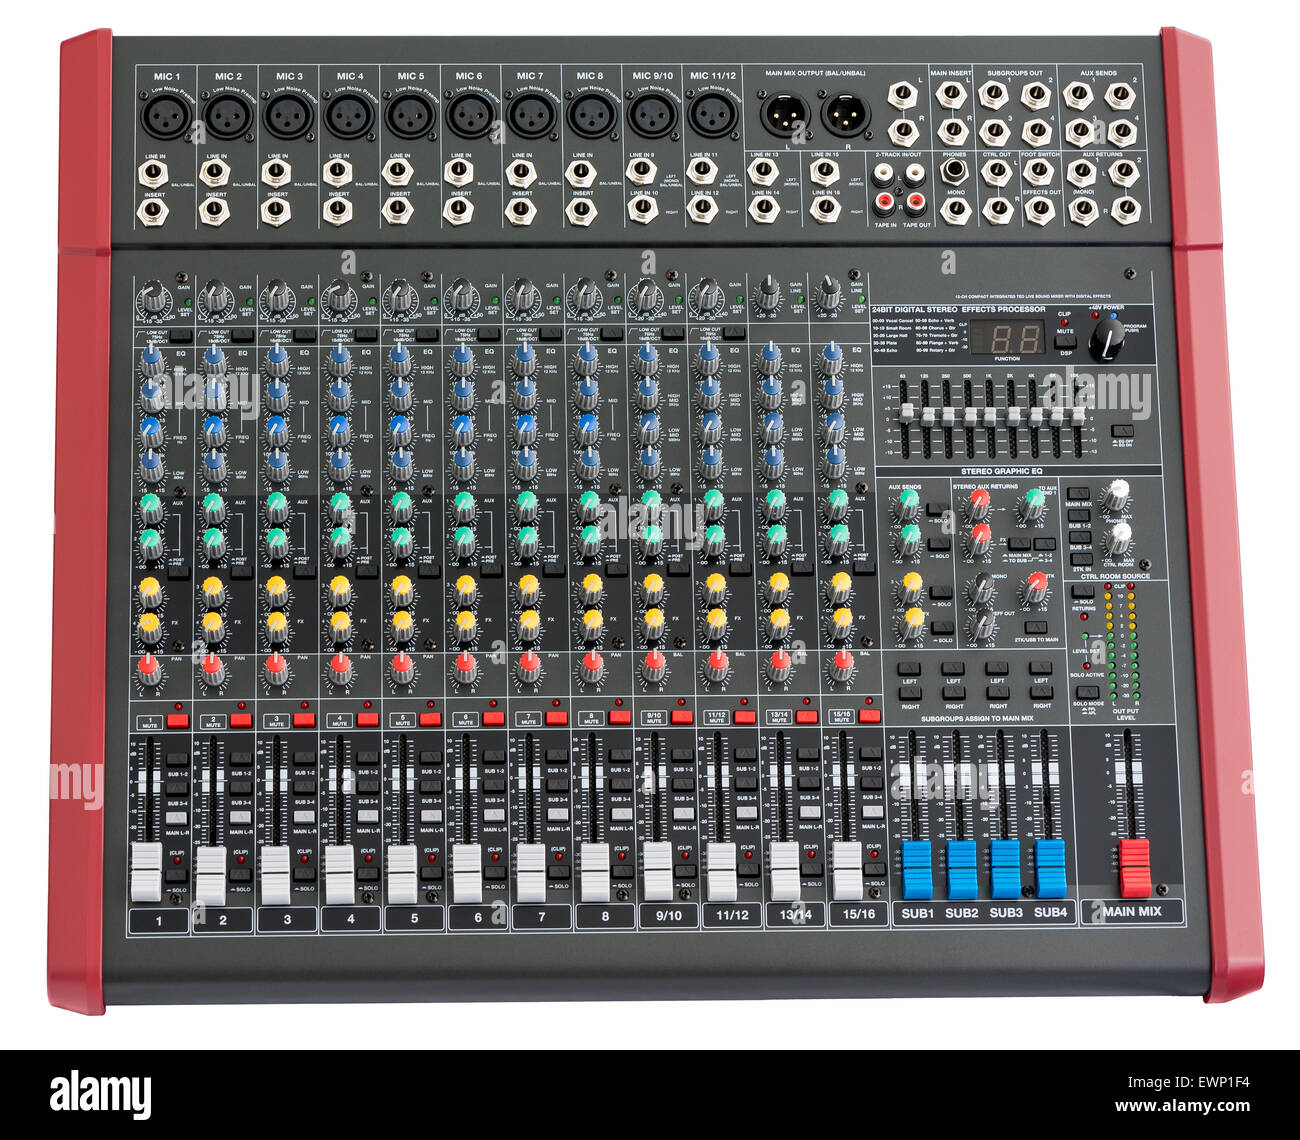 Professional Mixing Console. Music Device Isolated on White Background - Stock Image